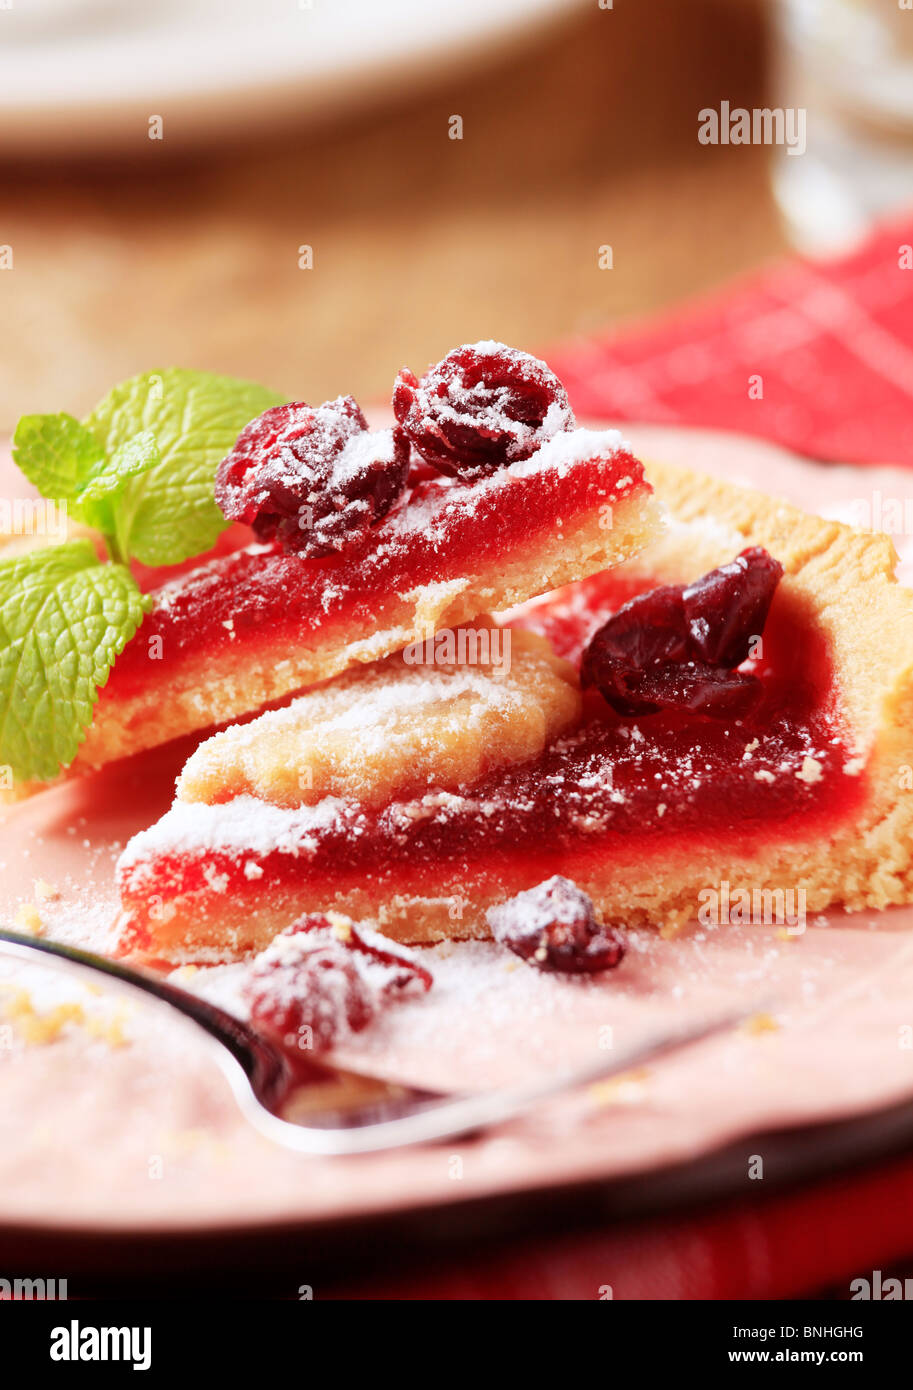 Slices of shortcrust cake with fruit filling - Stock Image